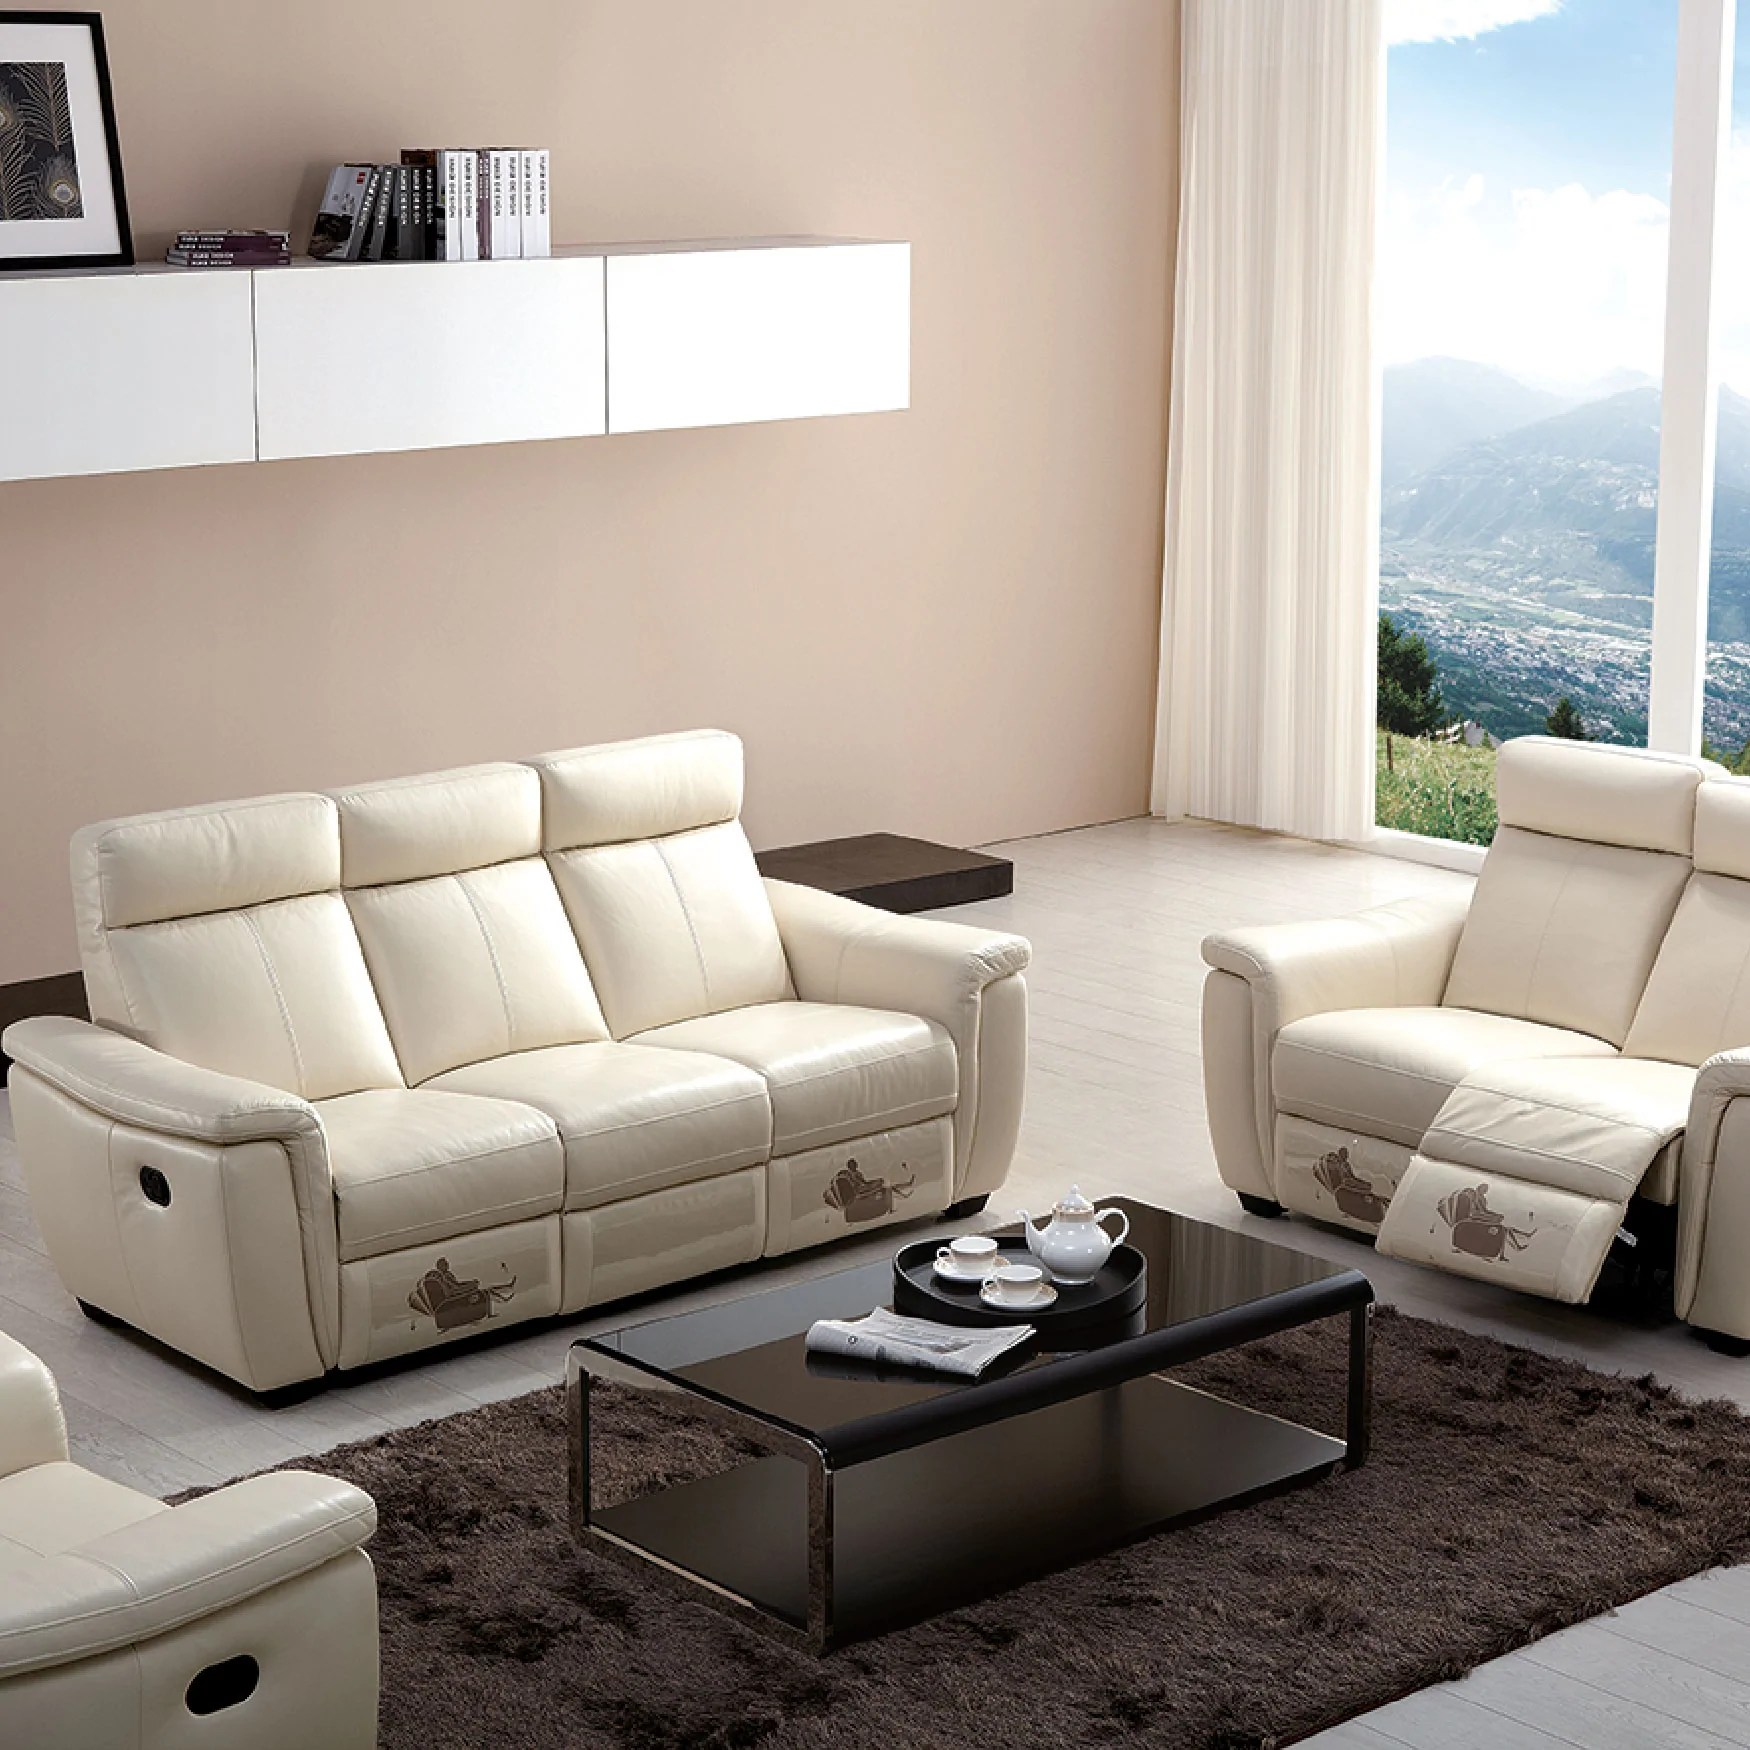 dunham reclining sofa brown leather what colour carpet how to move a recliner review home co